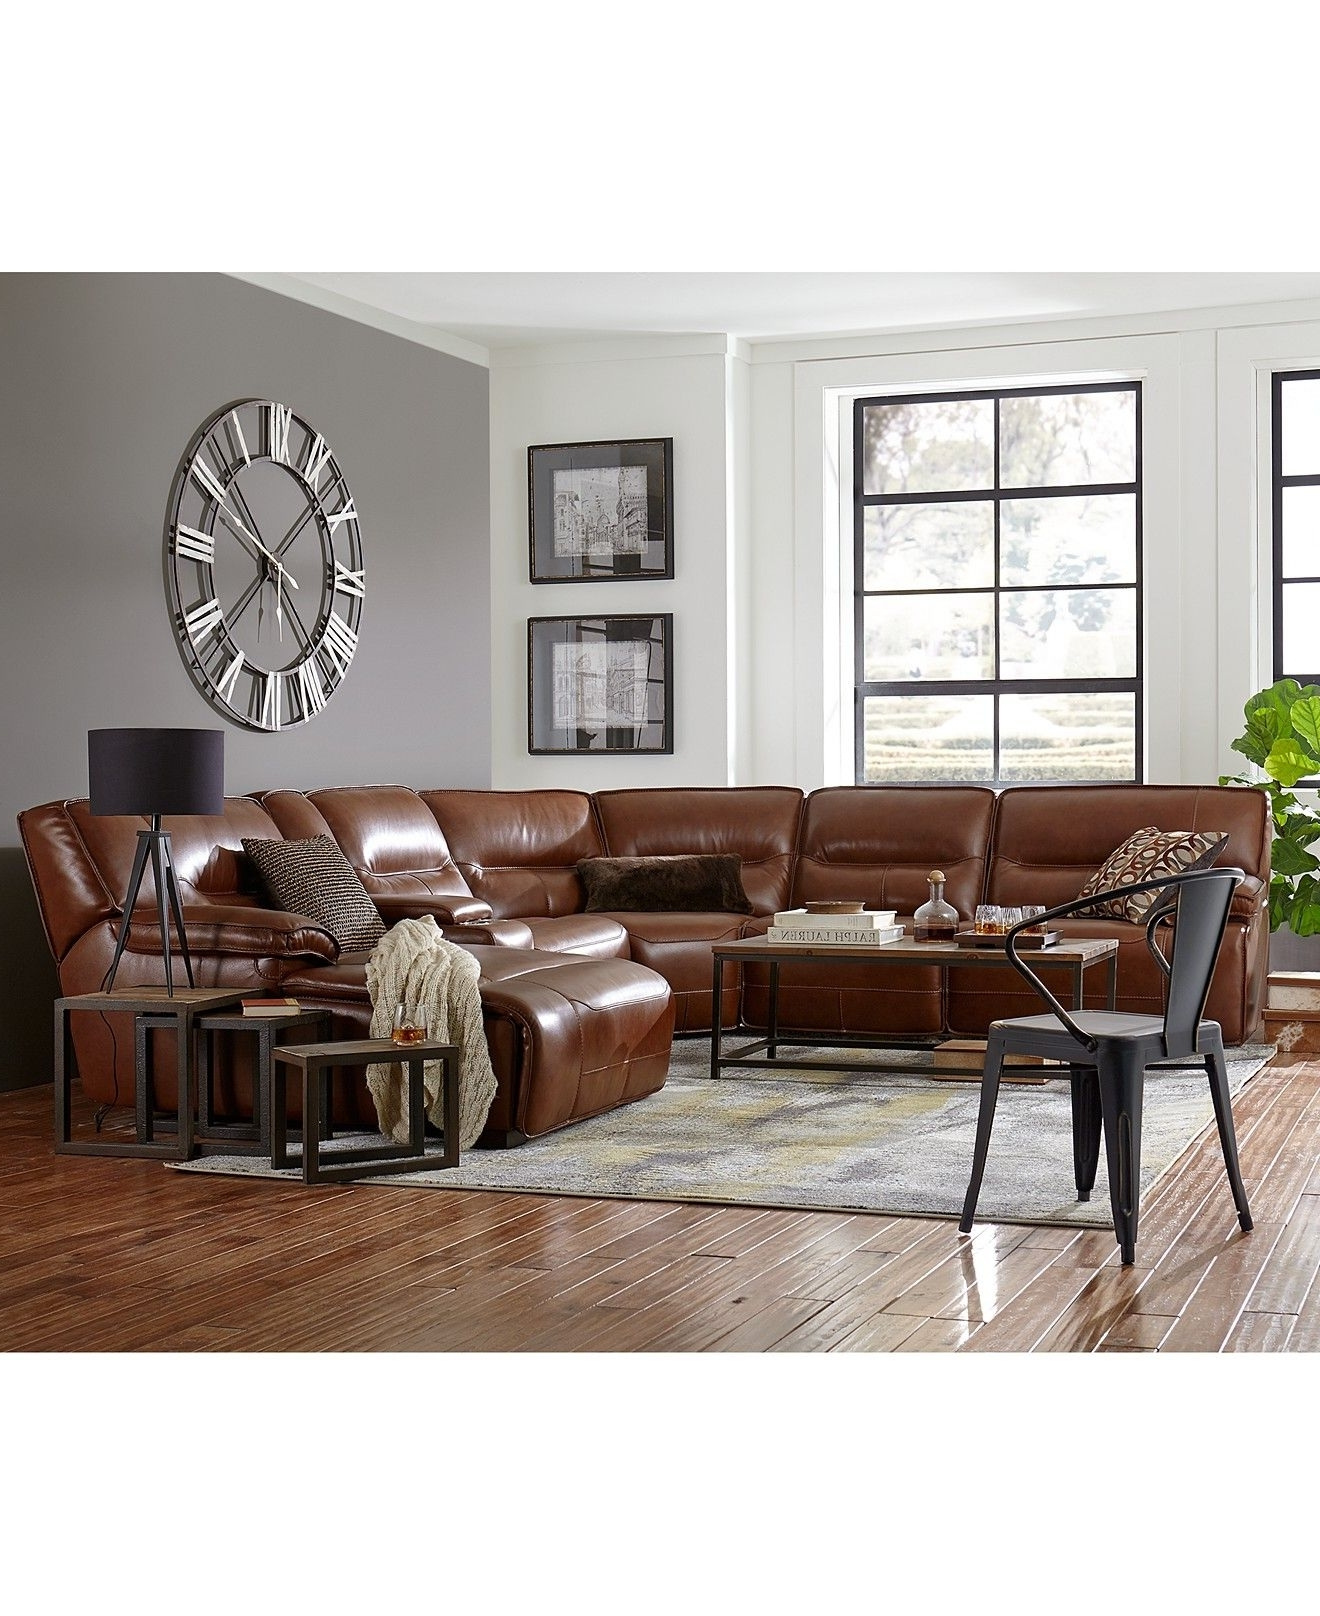 Preferred Macys Leather Sectional Sofas With Regard To Closeout! Beckett Leather Power Reclining Sectional Sofa (View 15 of 20)